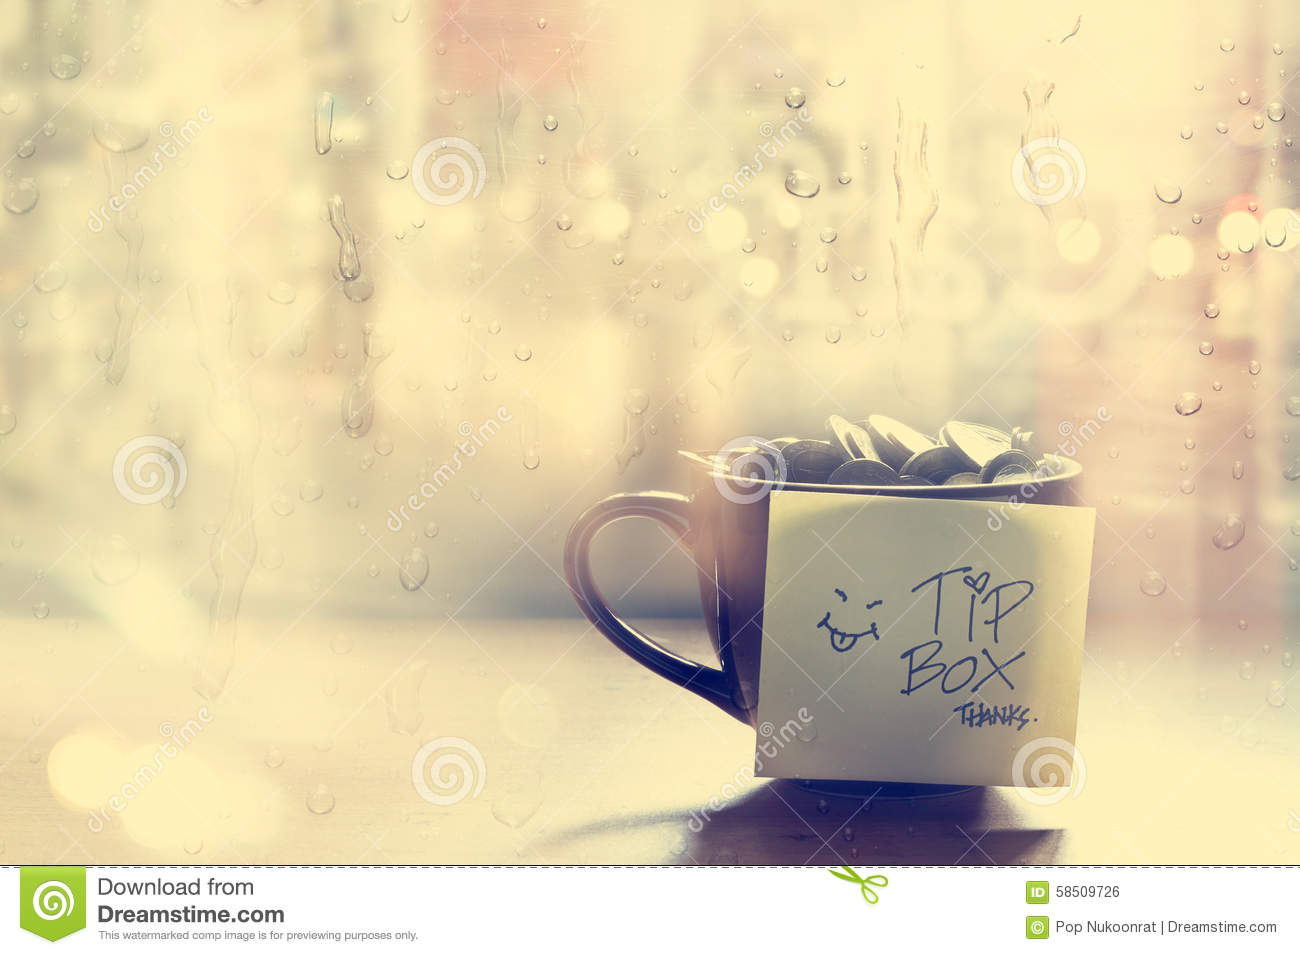 3d Animation Wallpaper Download Tip Box Coin In The Coffee Cup In Cafe Front Of Mirror